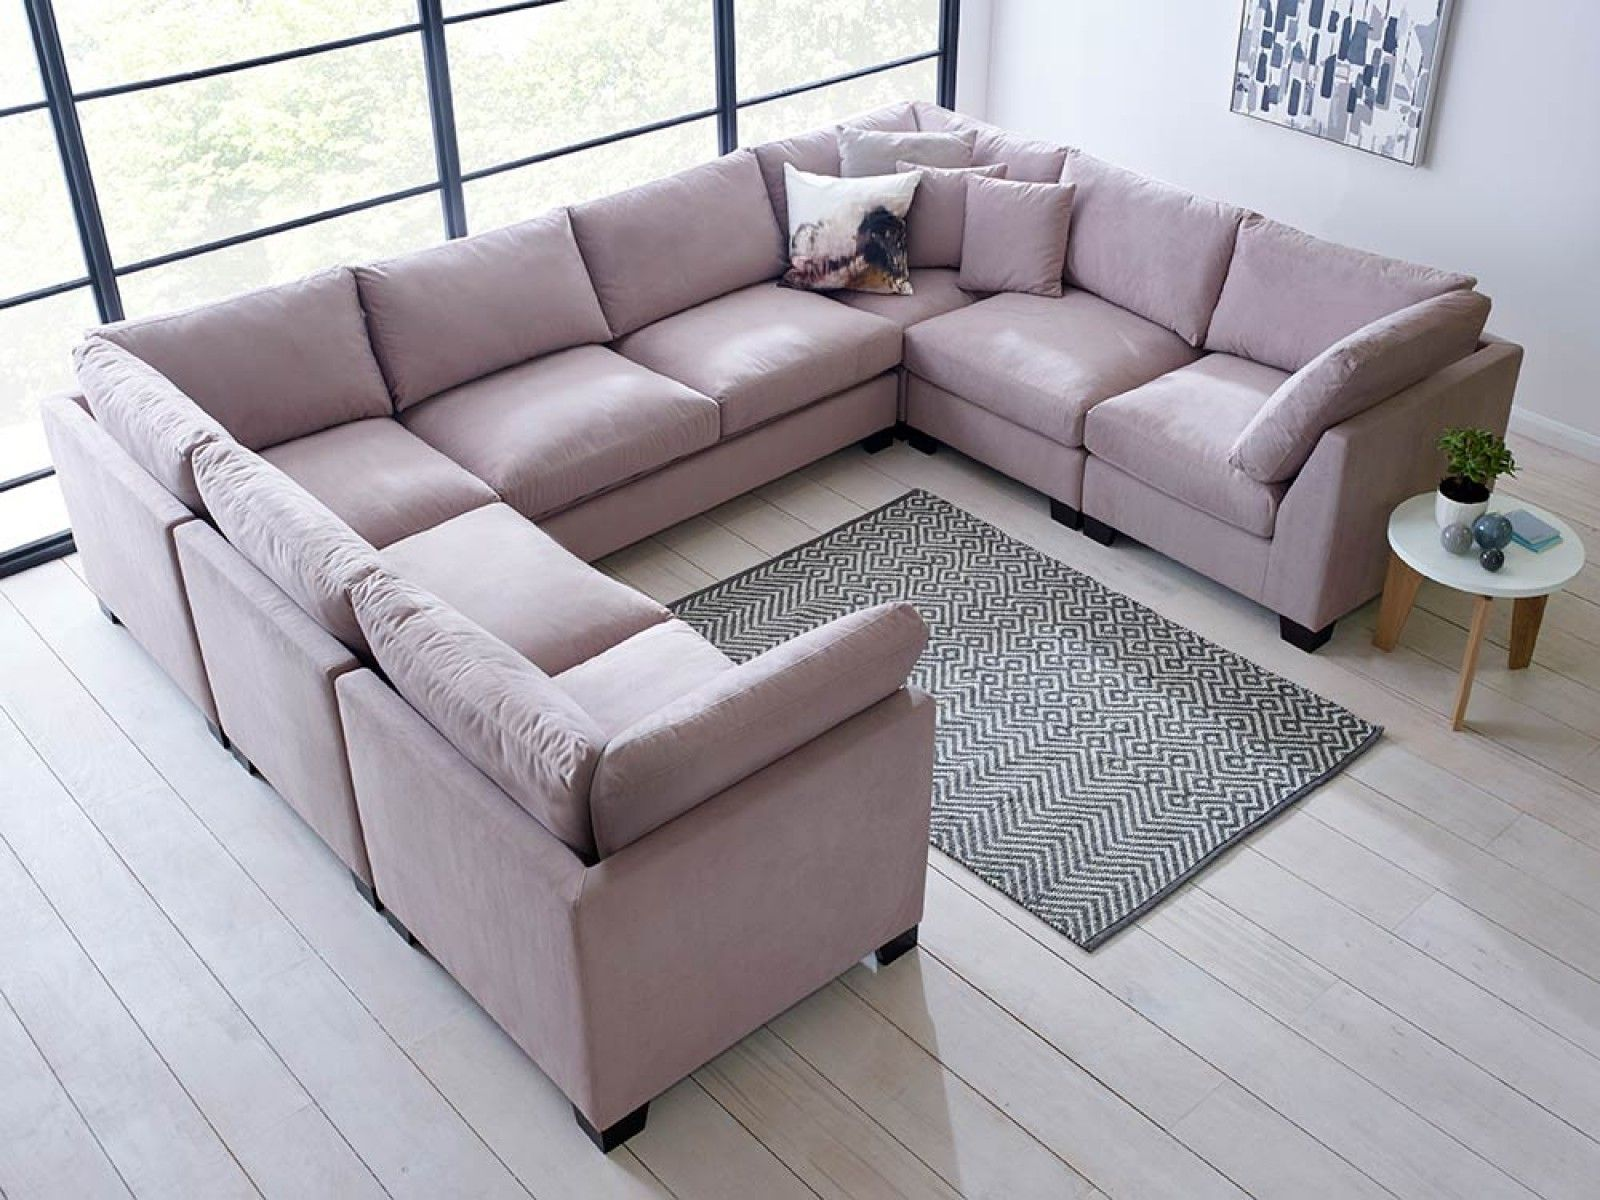 chaise lounge furniture collections with item fletcher lss sectional microfiber so klaussner sofa spacious sofas wayside